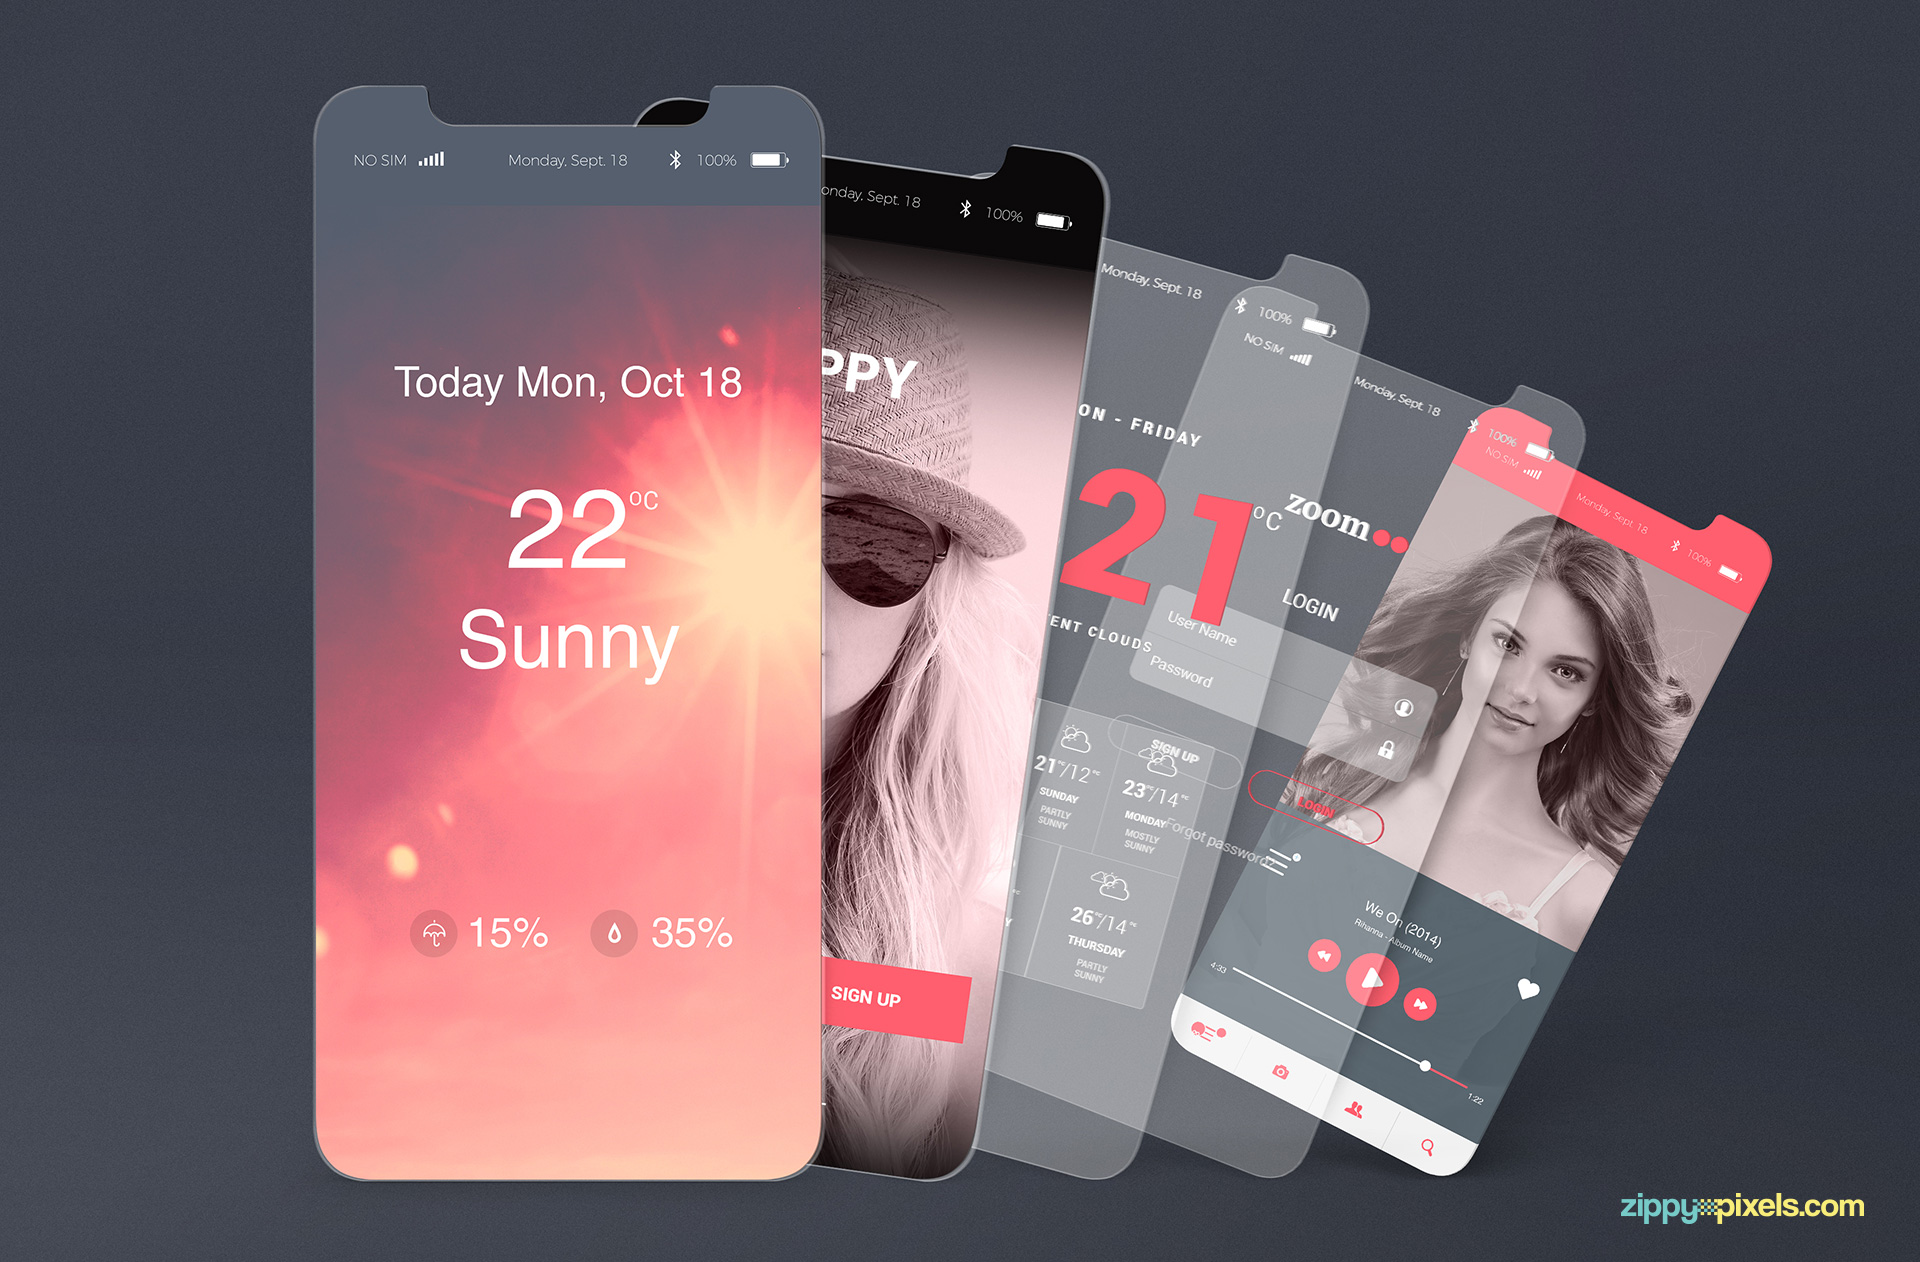 App presentation mockups for iPhone X.